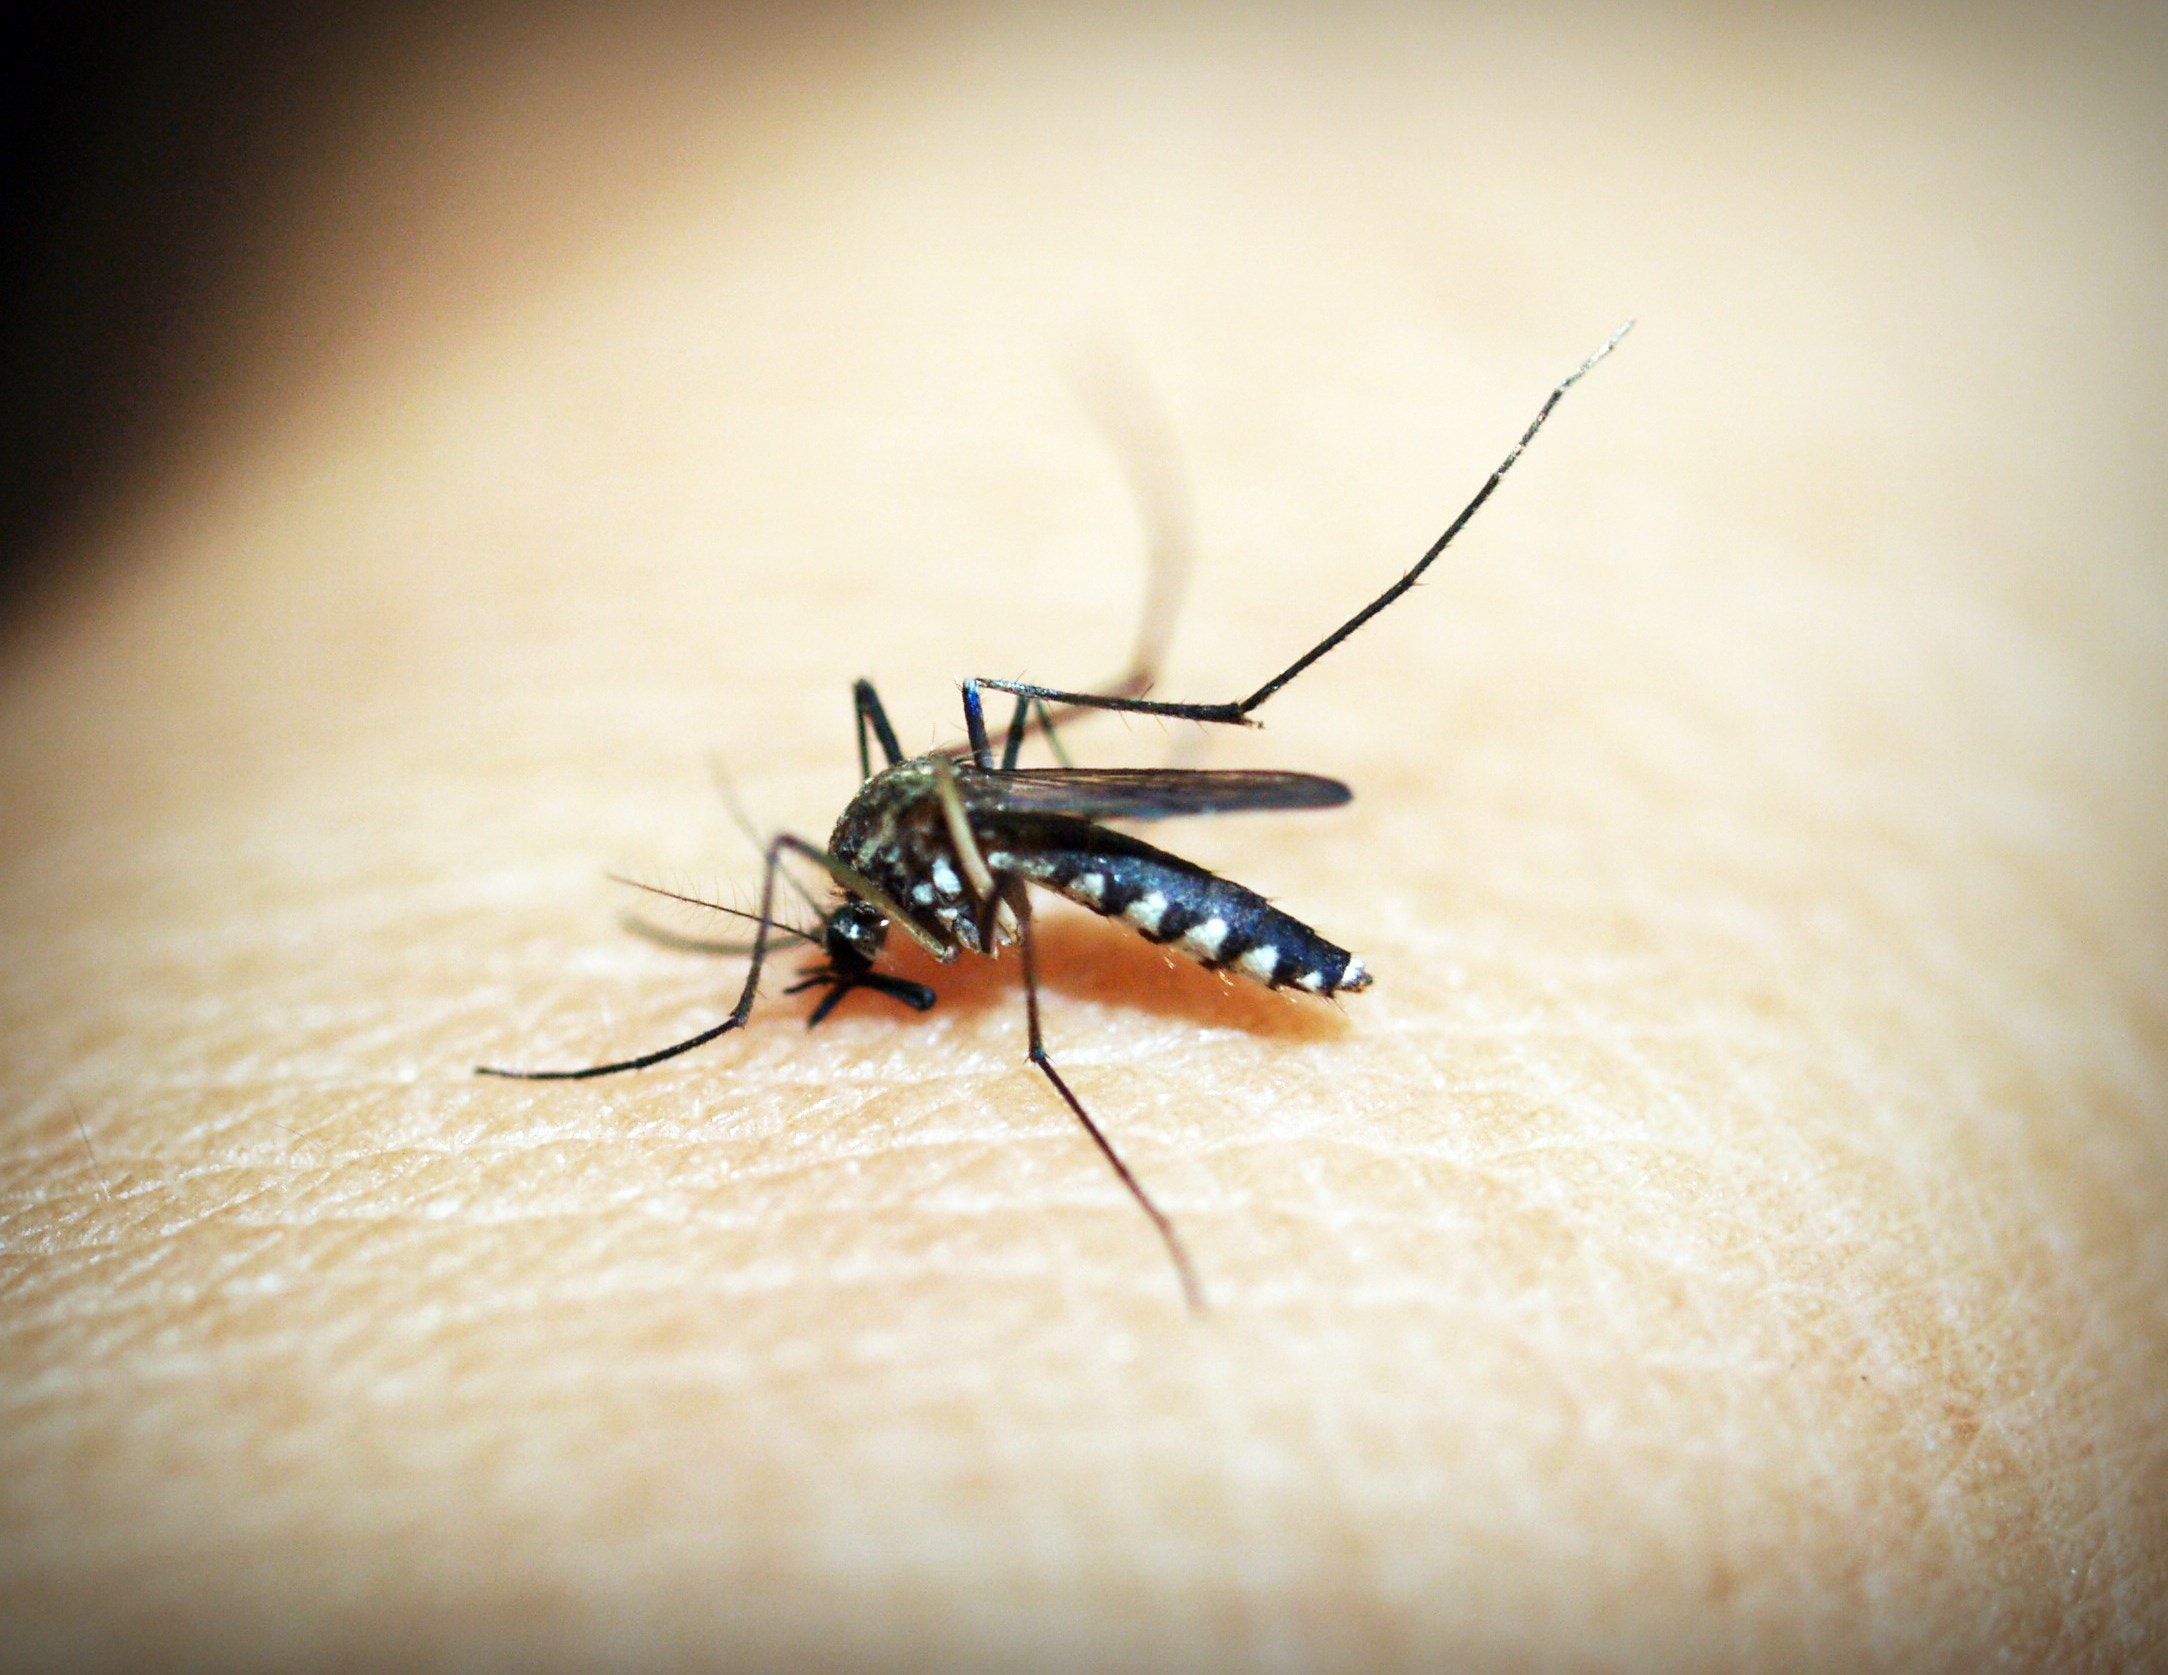 naturopathic advice to limit the inconvenience of an insect bite